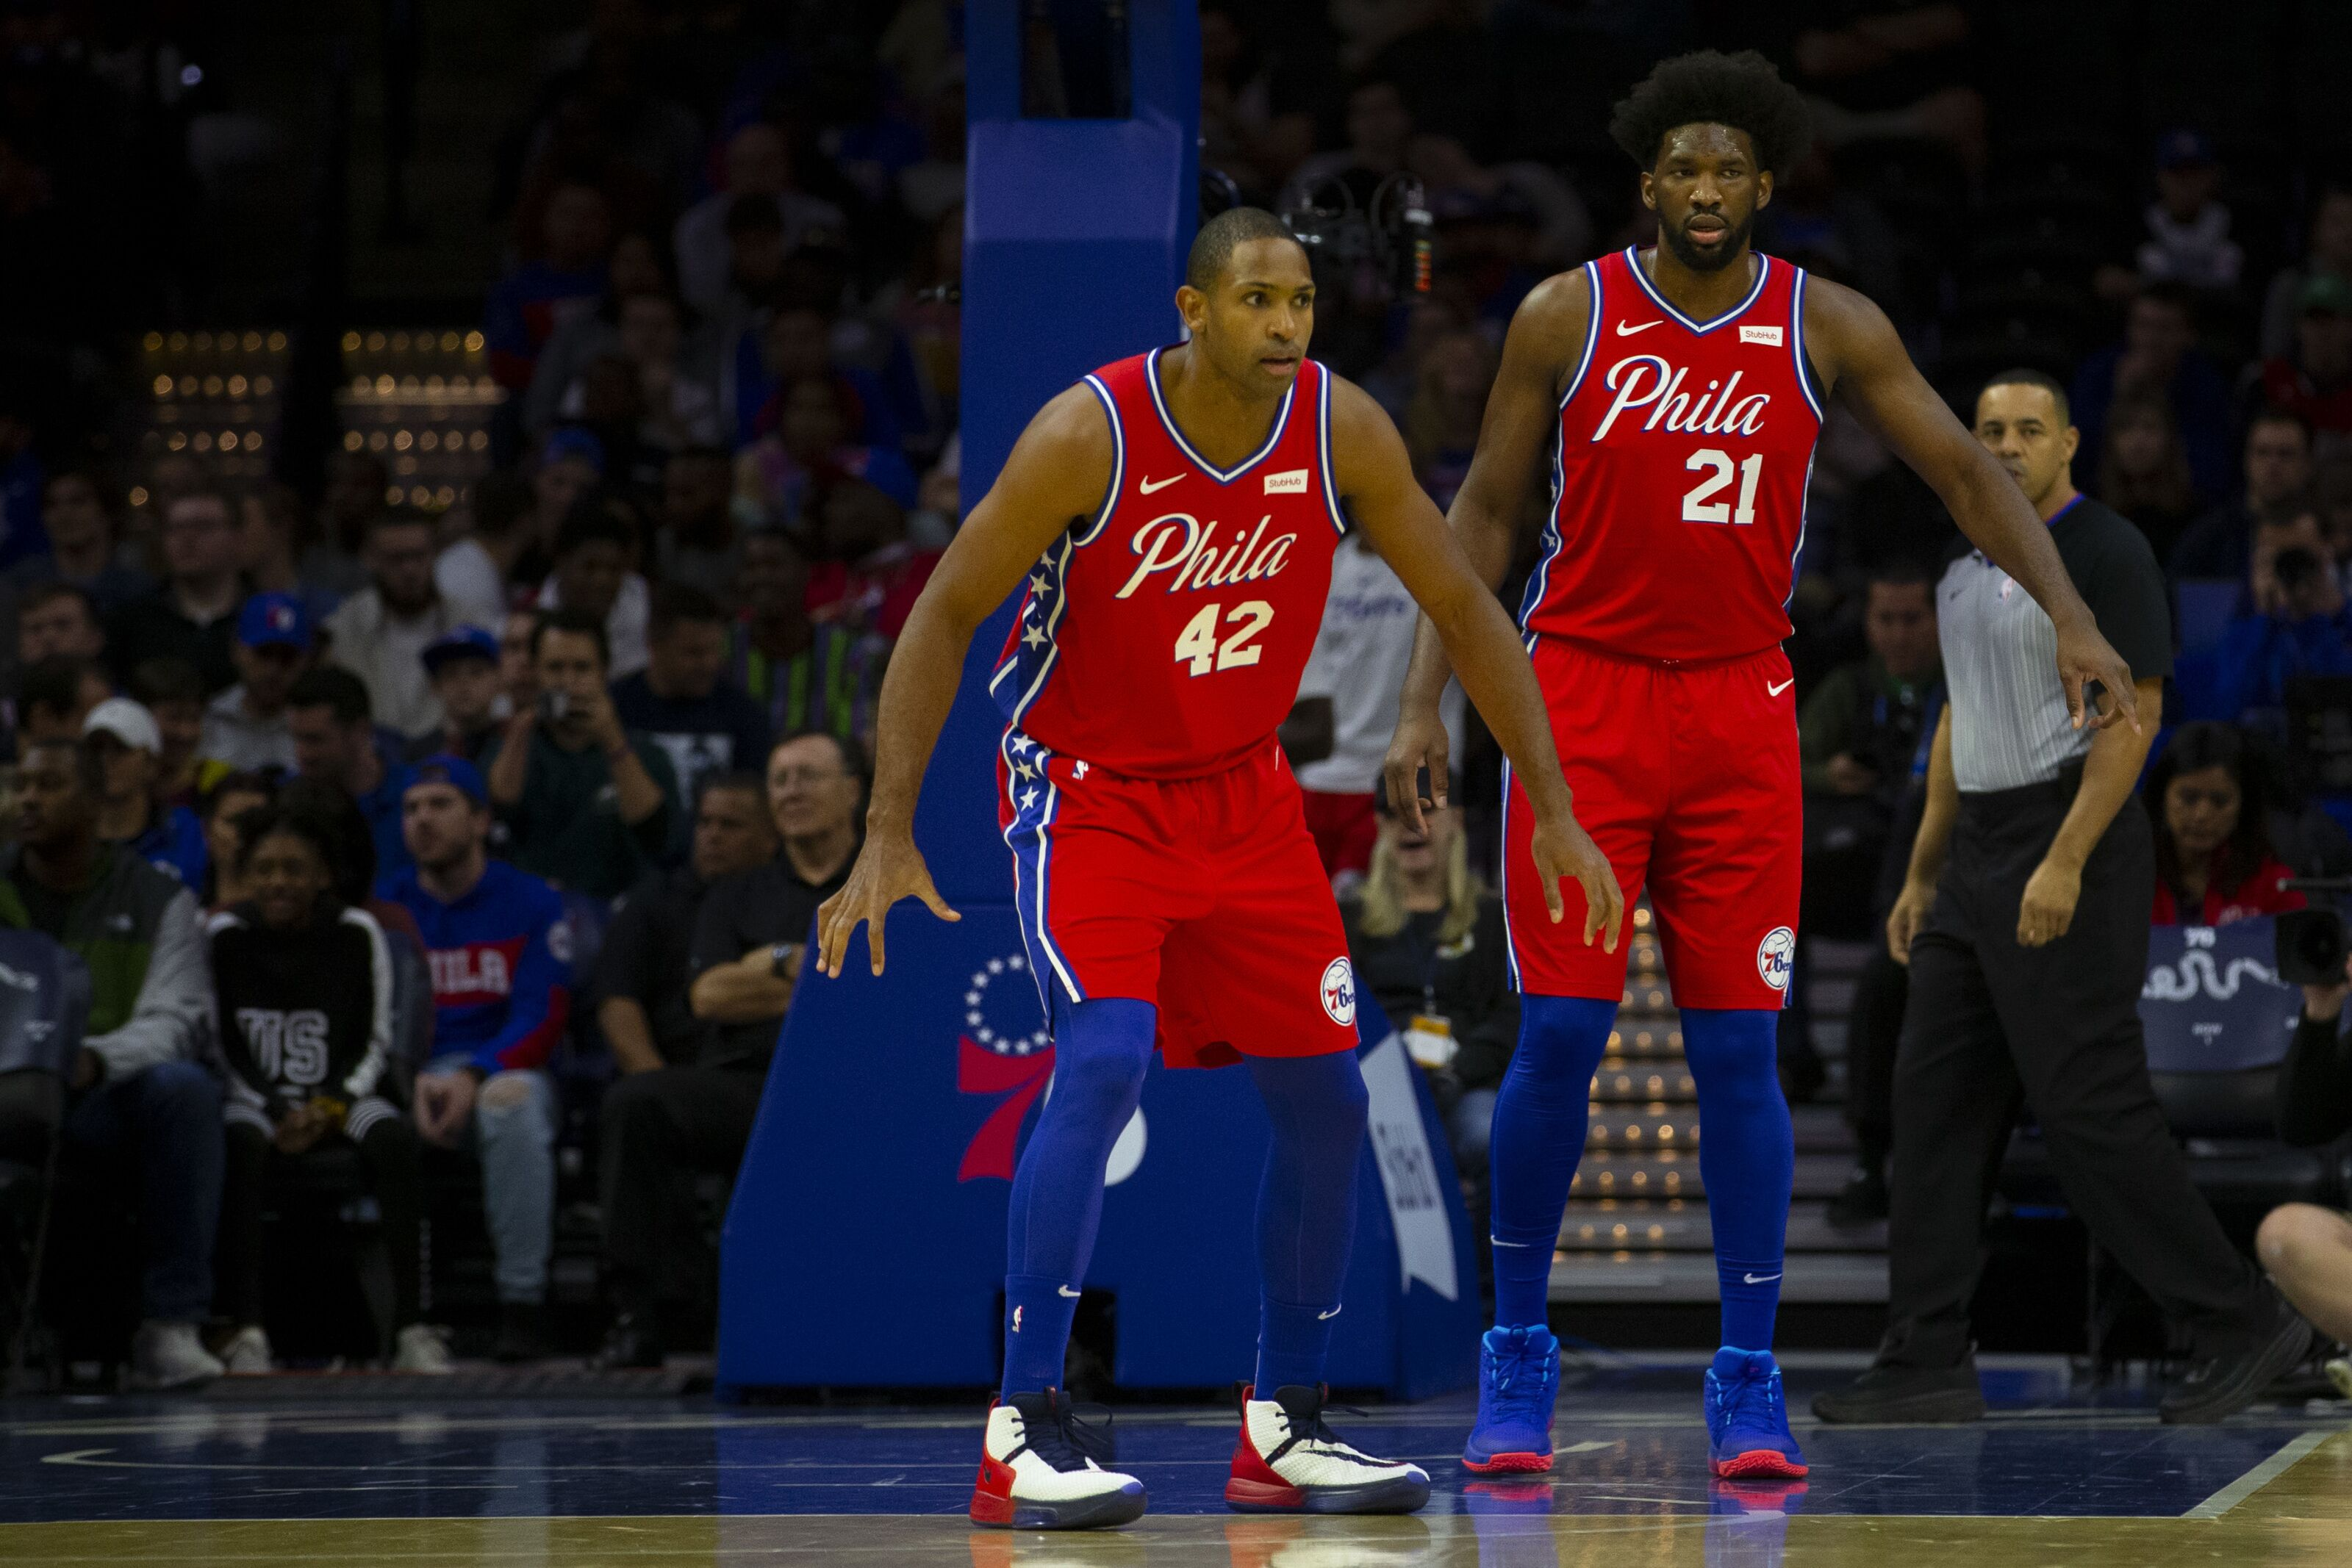 Al Horford's reason for why he joined the Philadelphia 76ers